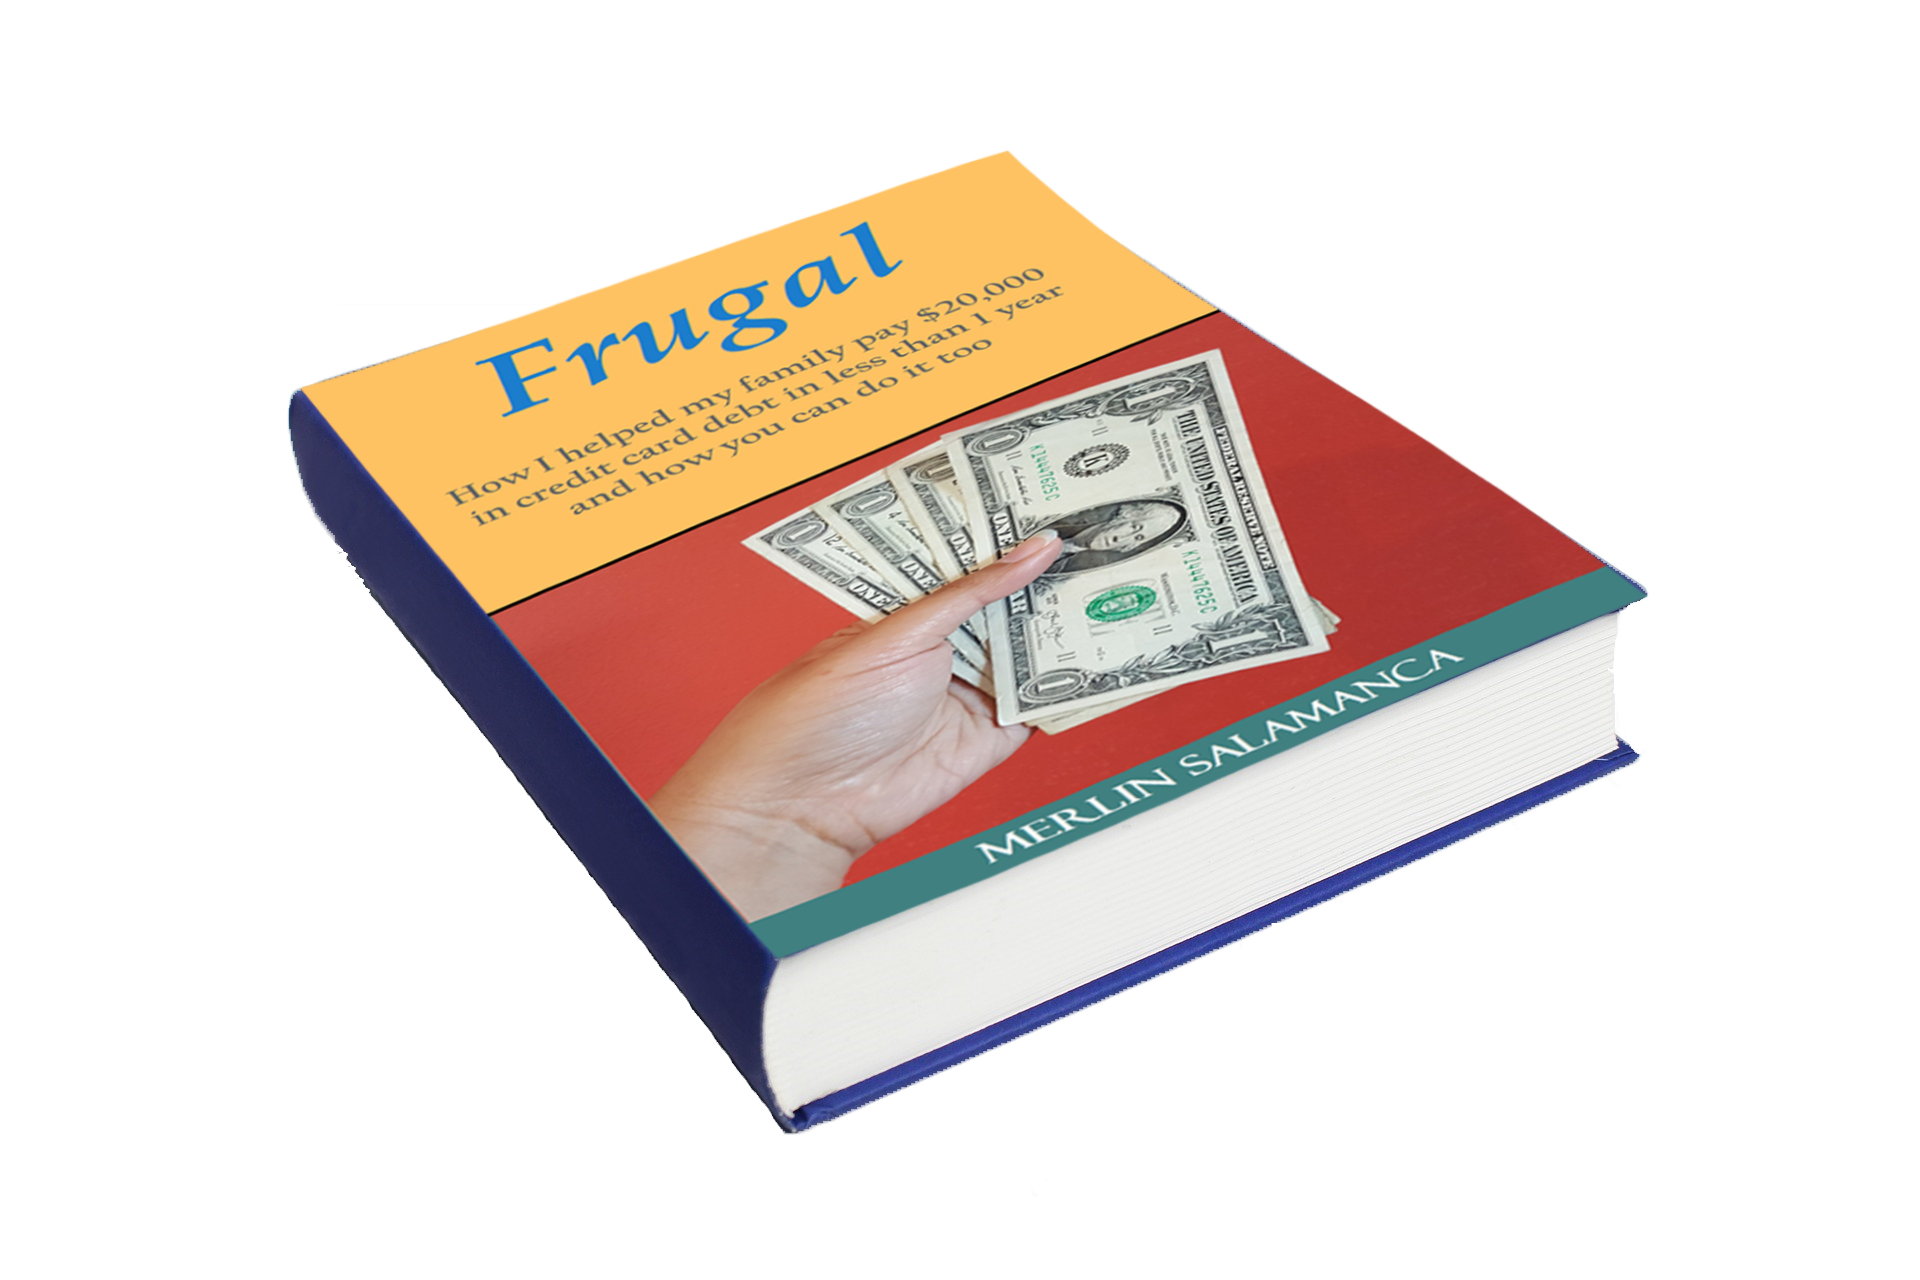 Frugal by Merlin Salamanca e-book